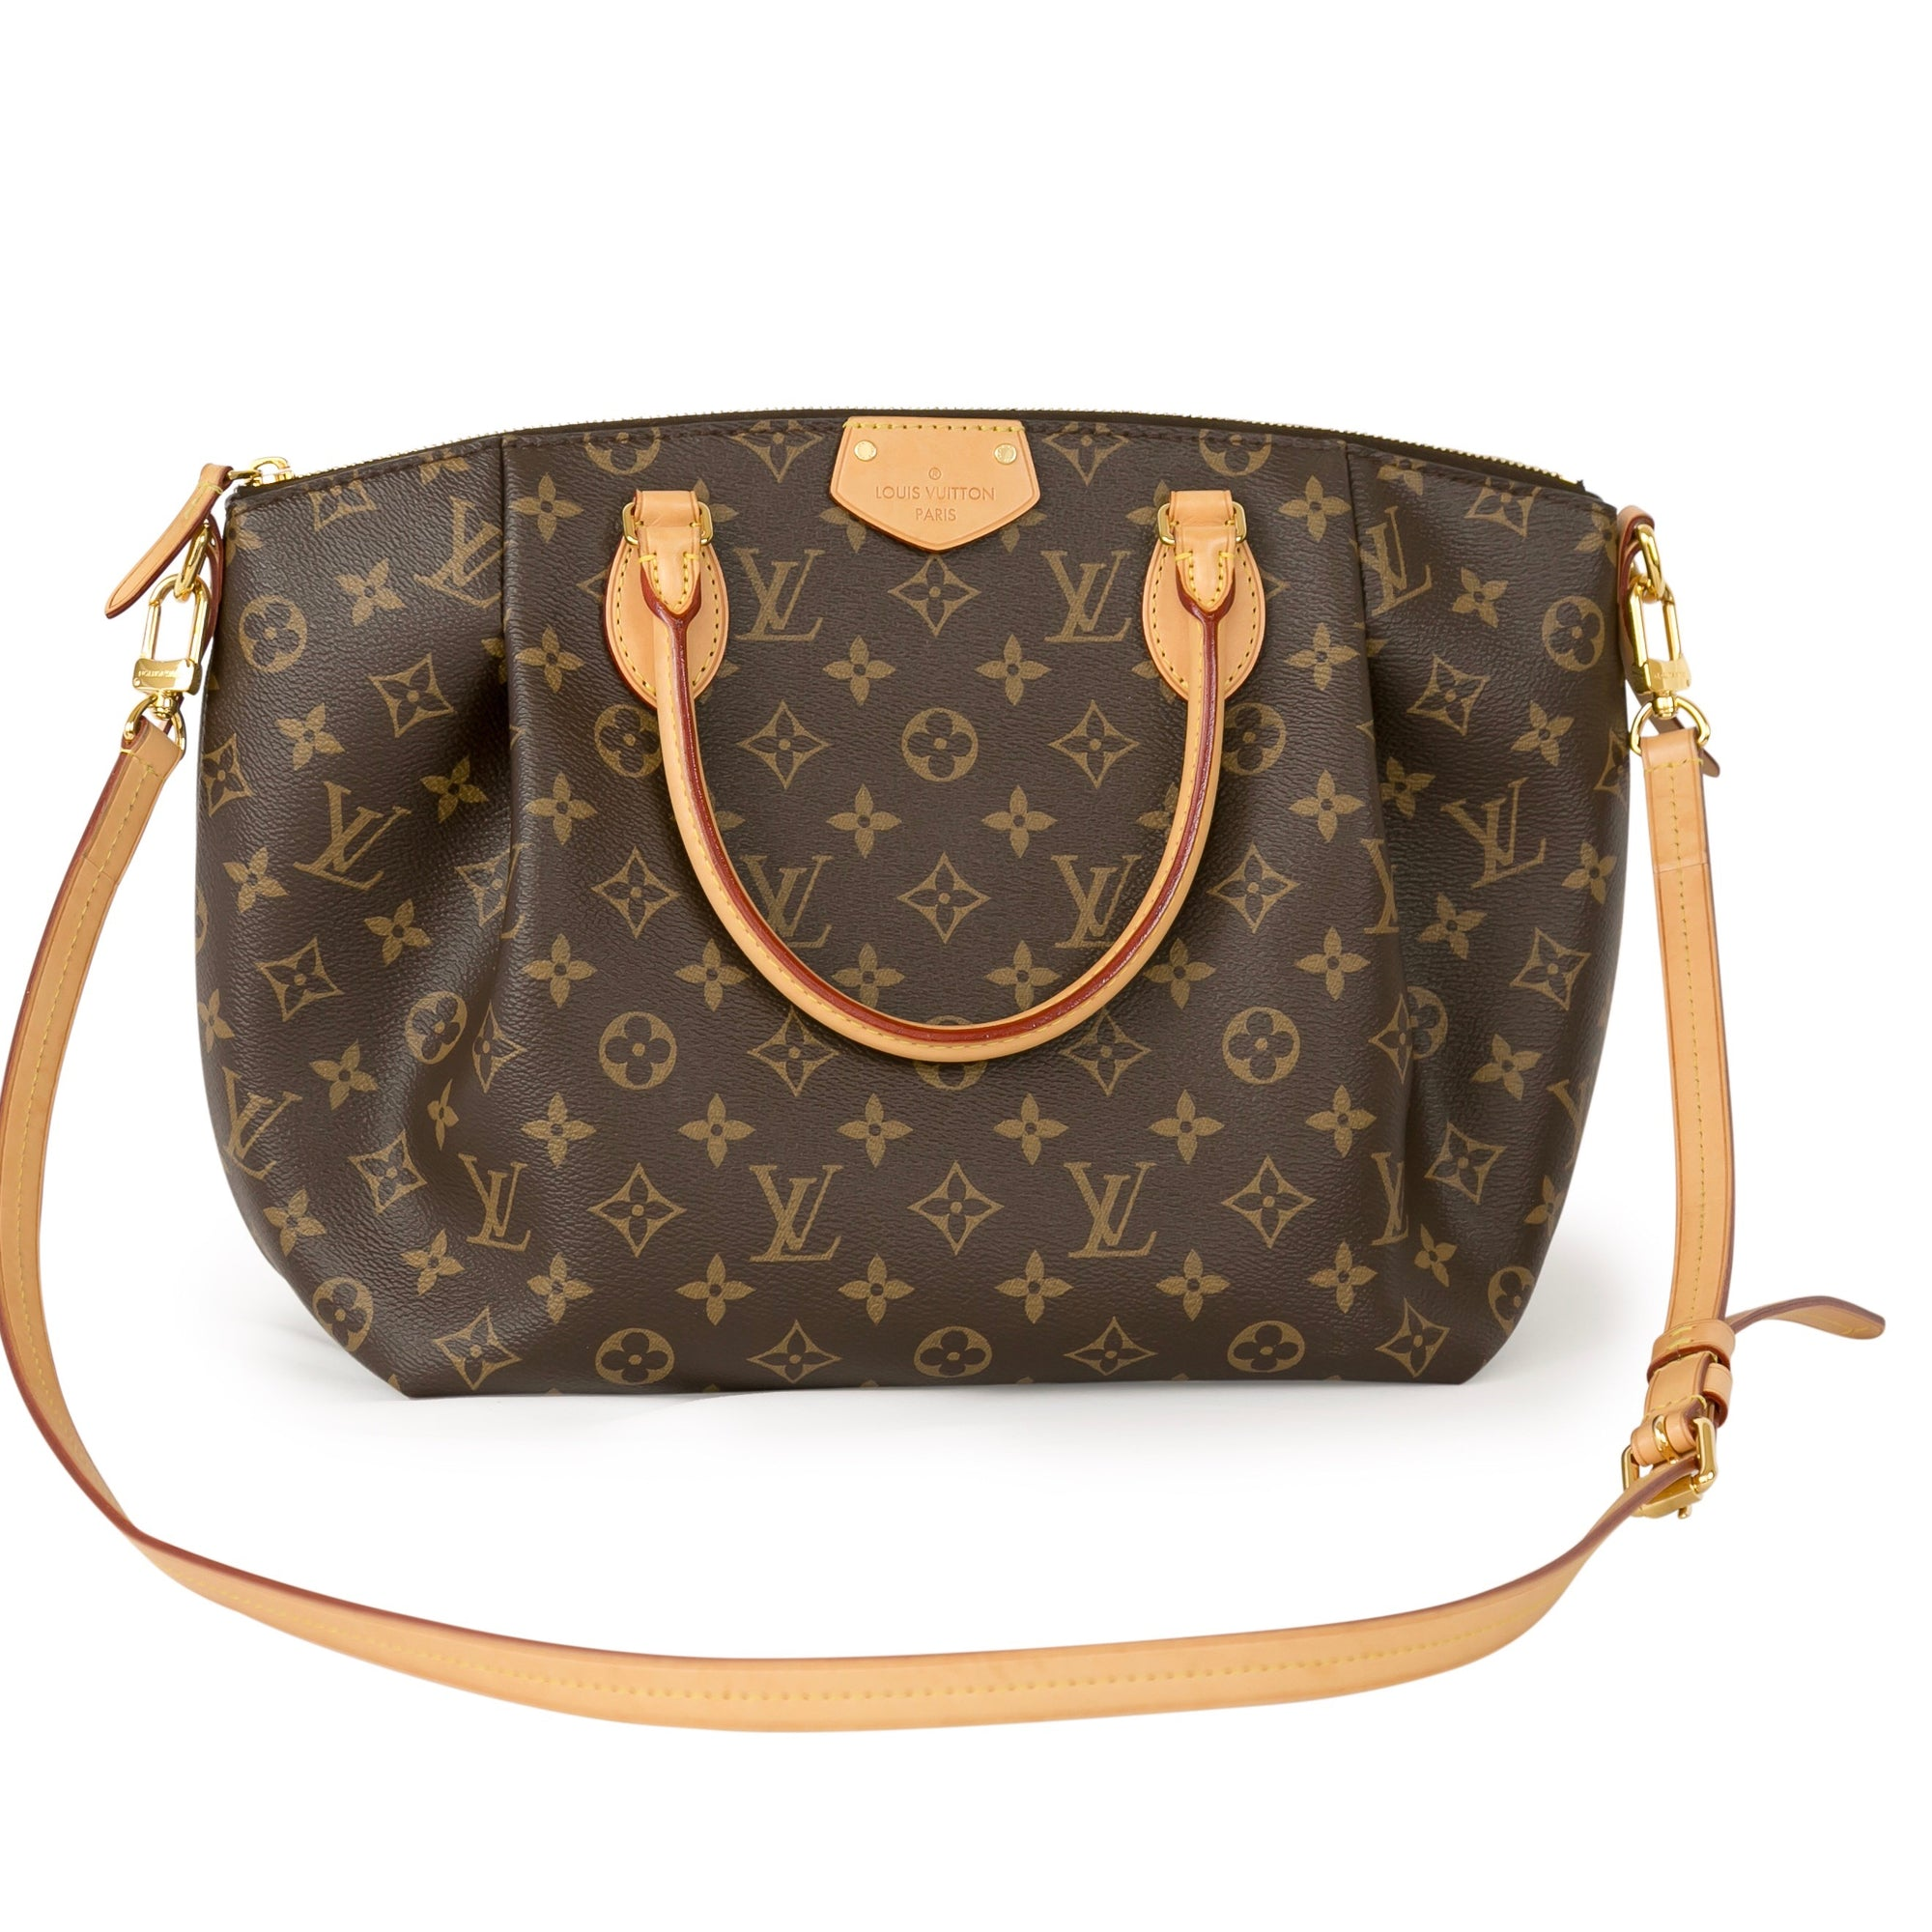 ladiesoflux - Louis Vuitton Turenne MM Monogram Bag - Ladies Of Lux - Handbag